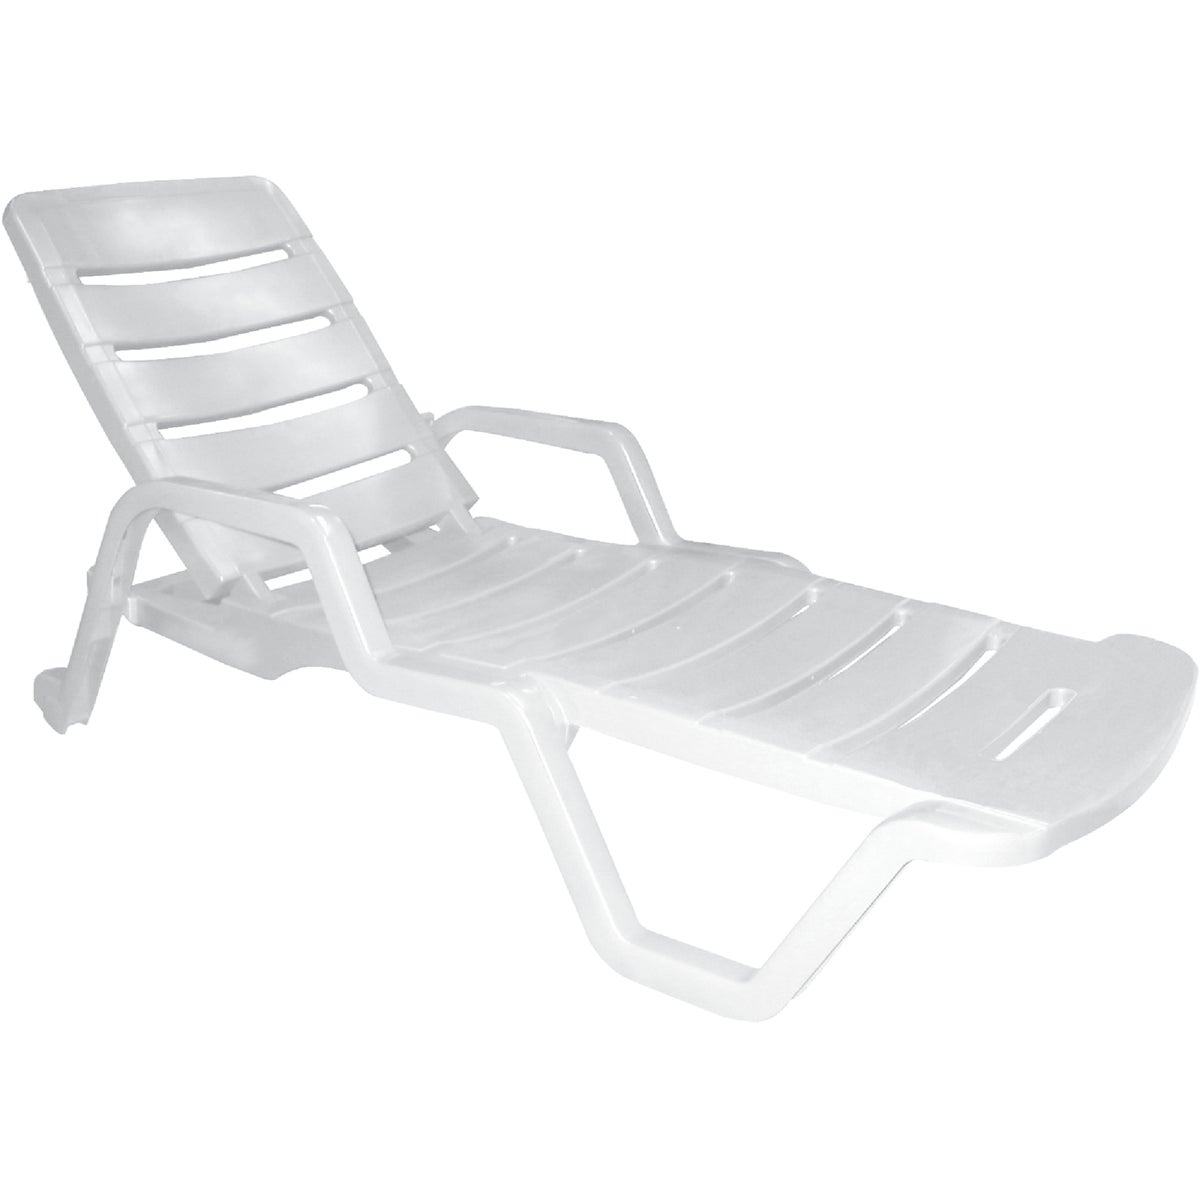 WHITE CHAISE LOUNGE - 8010-48-3770 by Adams Mfg Patio Furn